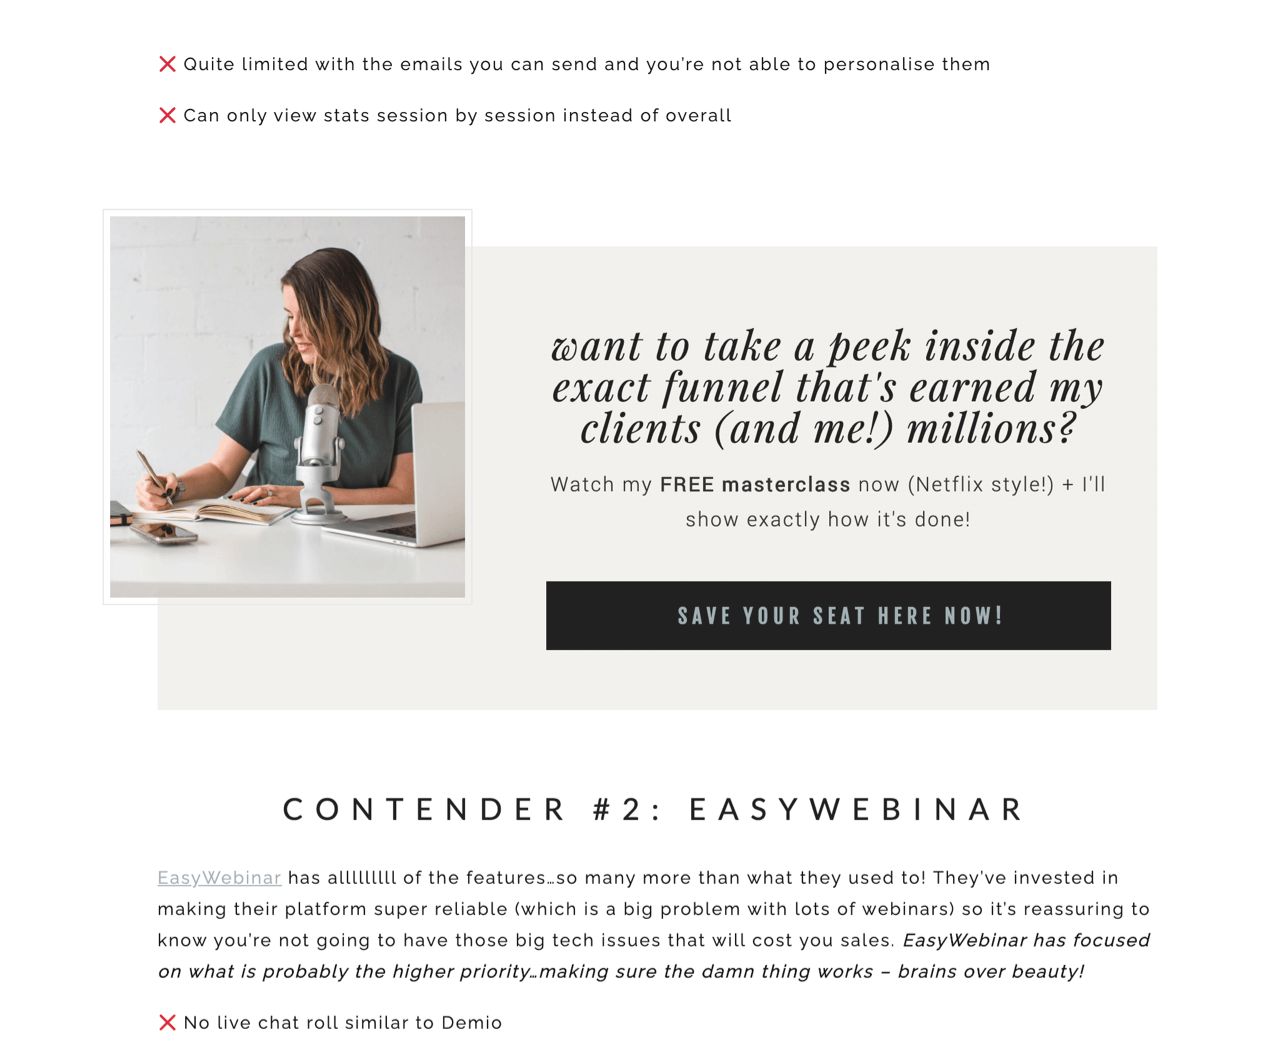 Kate McKibbin offers uses webinars as a form of a content upgrade to grow her email list